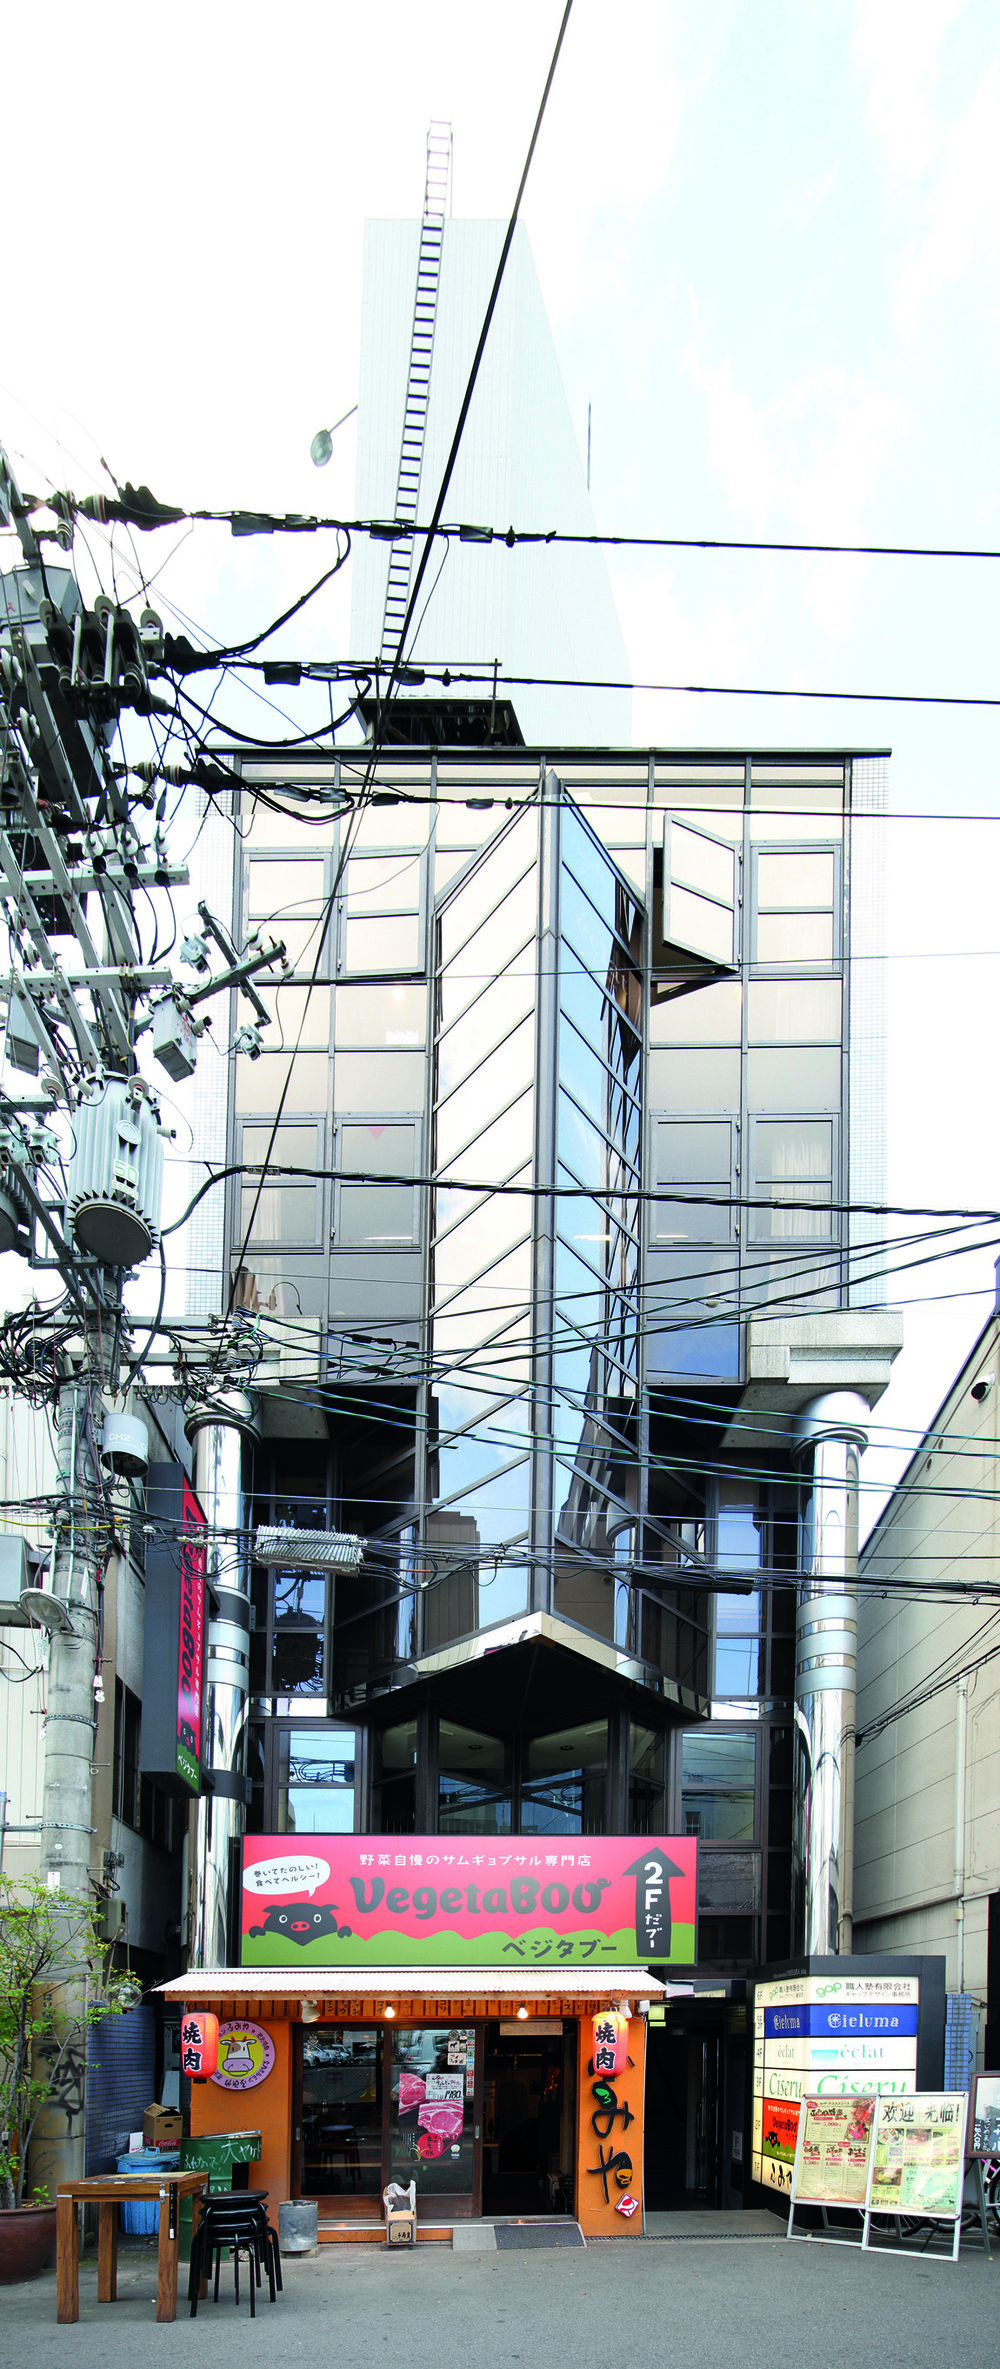 Image 3 / Any base building may have several of these scaffold extensions or entrances. Two modern pencil buildings and their add-ons, Bakuromachi and Dōtonbori, Osaka, Photograph by CC Williams